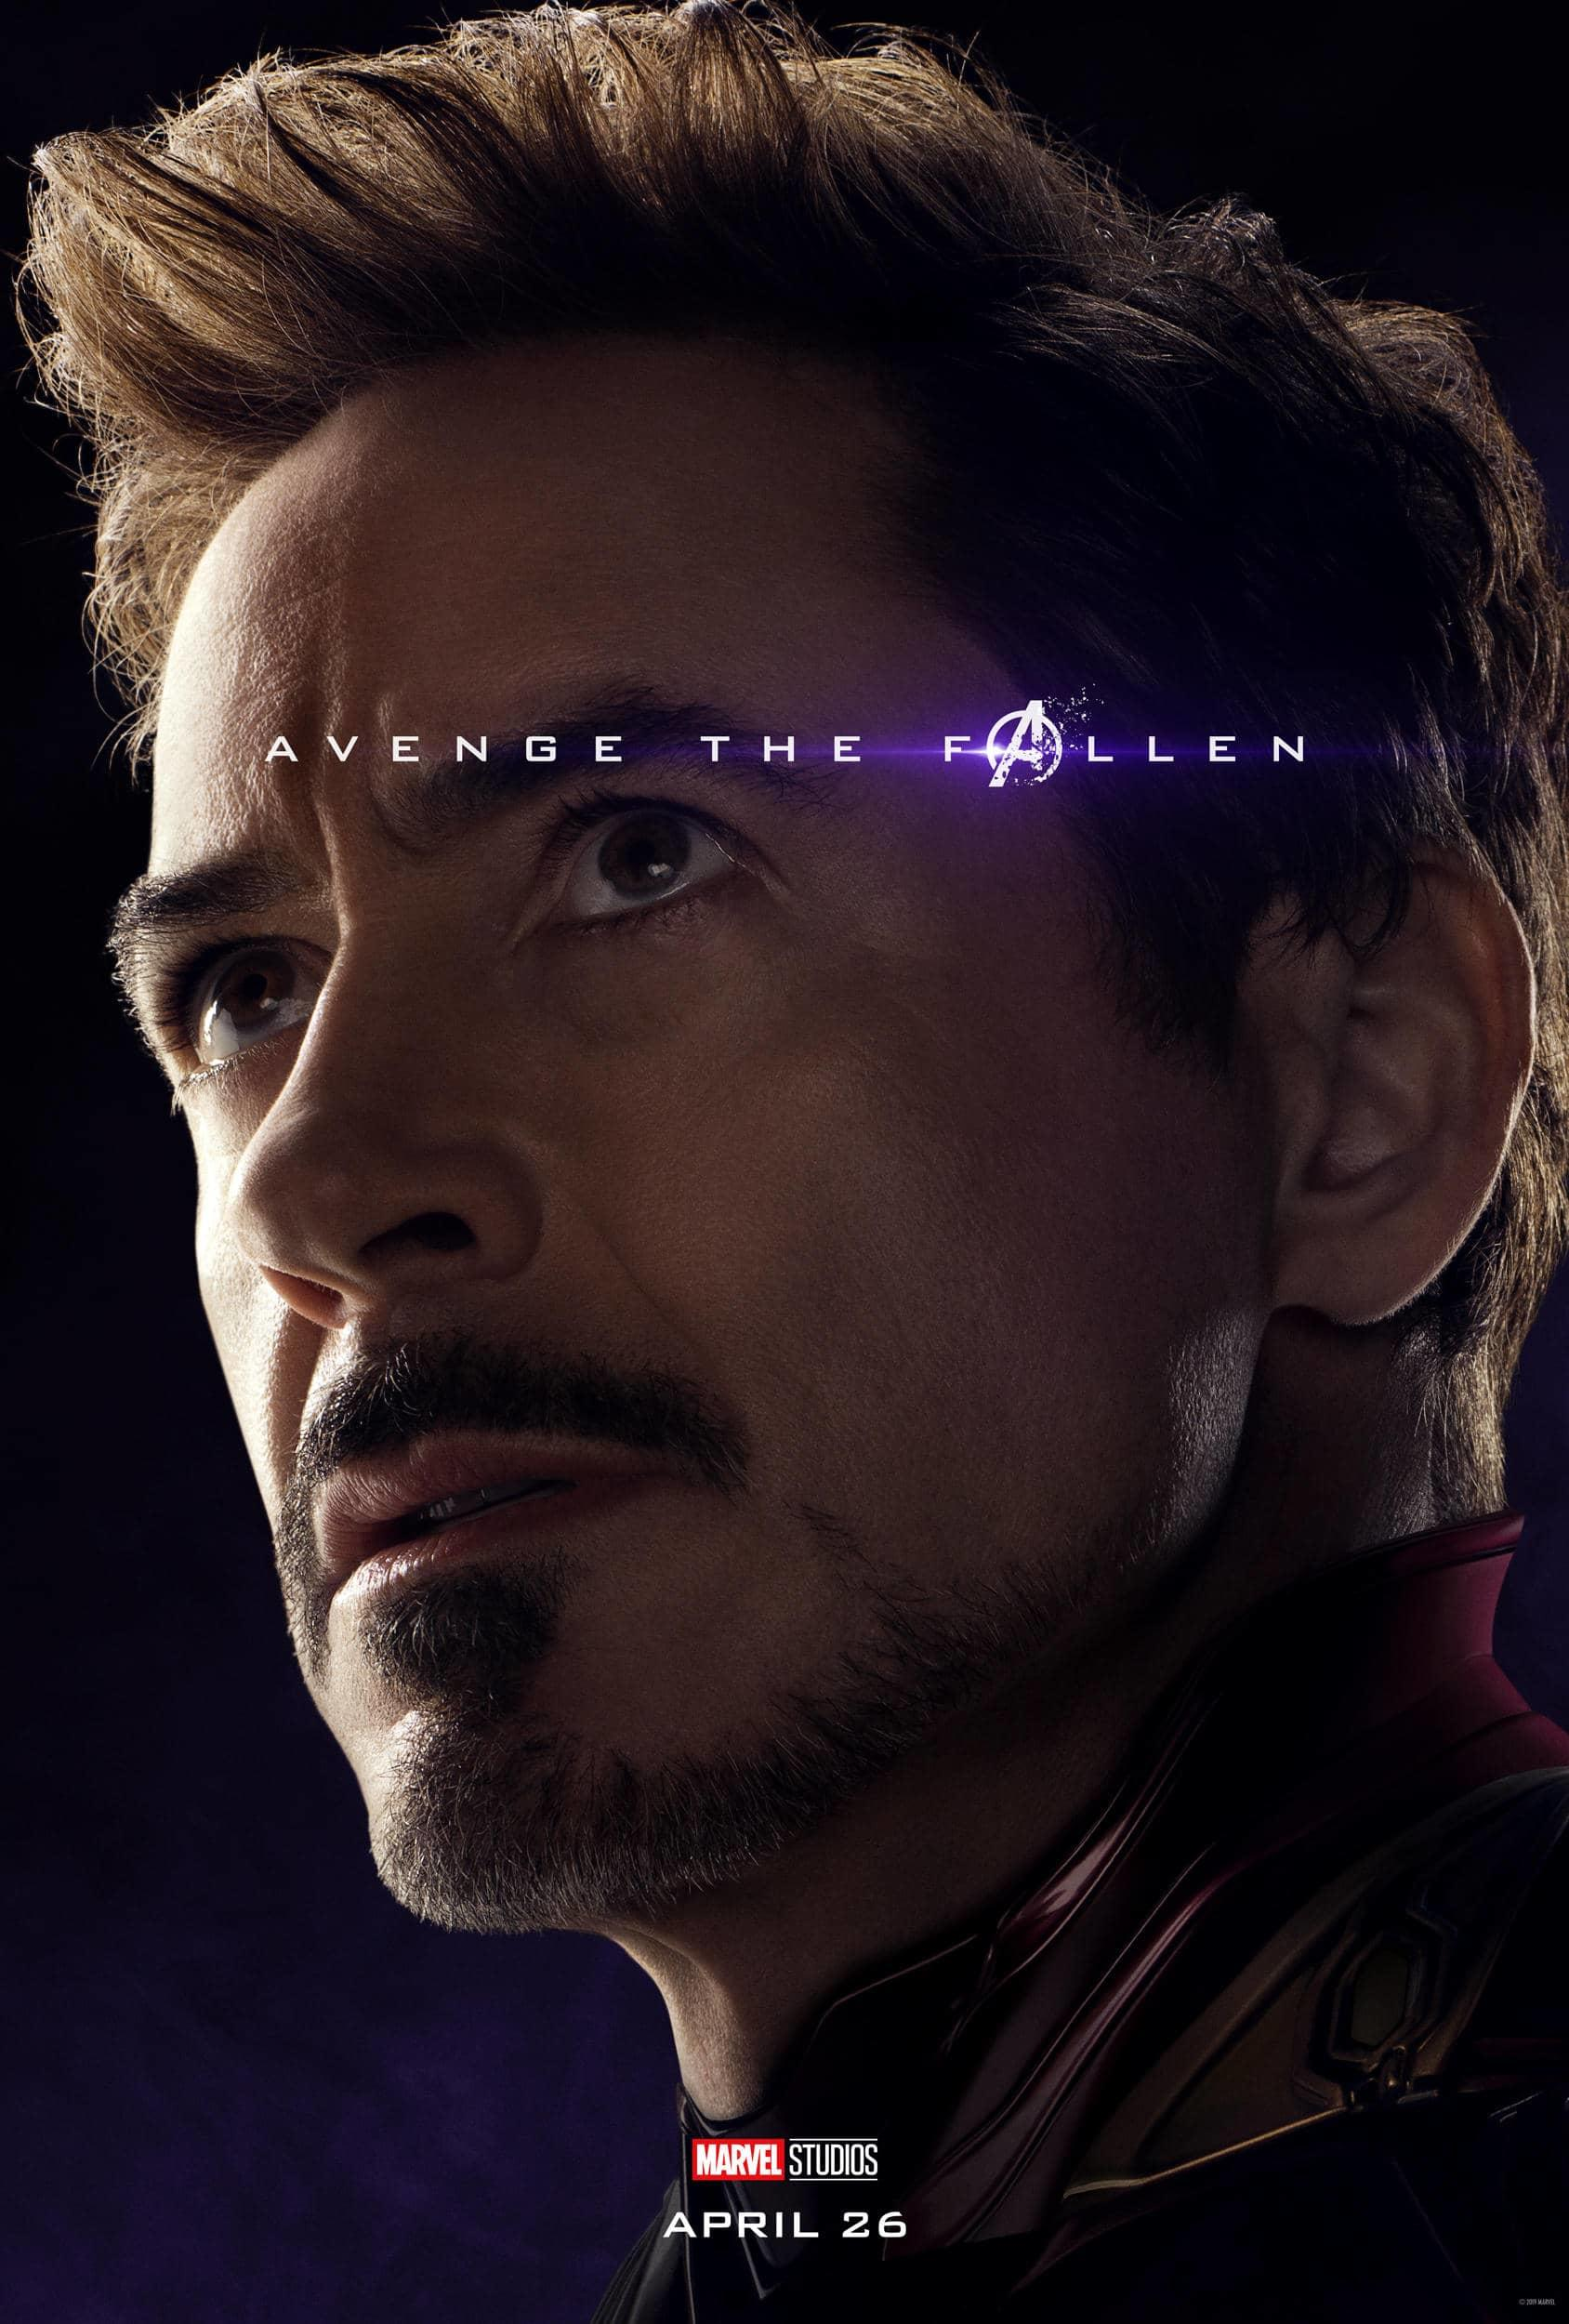 Marvel Studios' Avengers: Endgame Movie Cast Iron Man (Tony Stark) Robert Downey Jr.